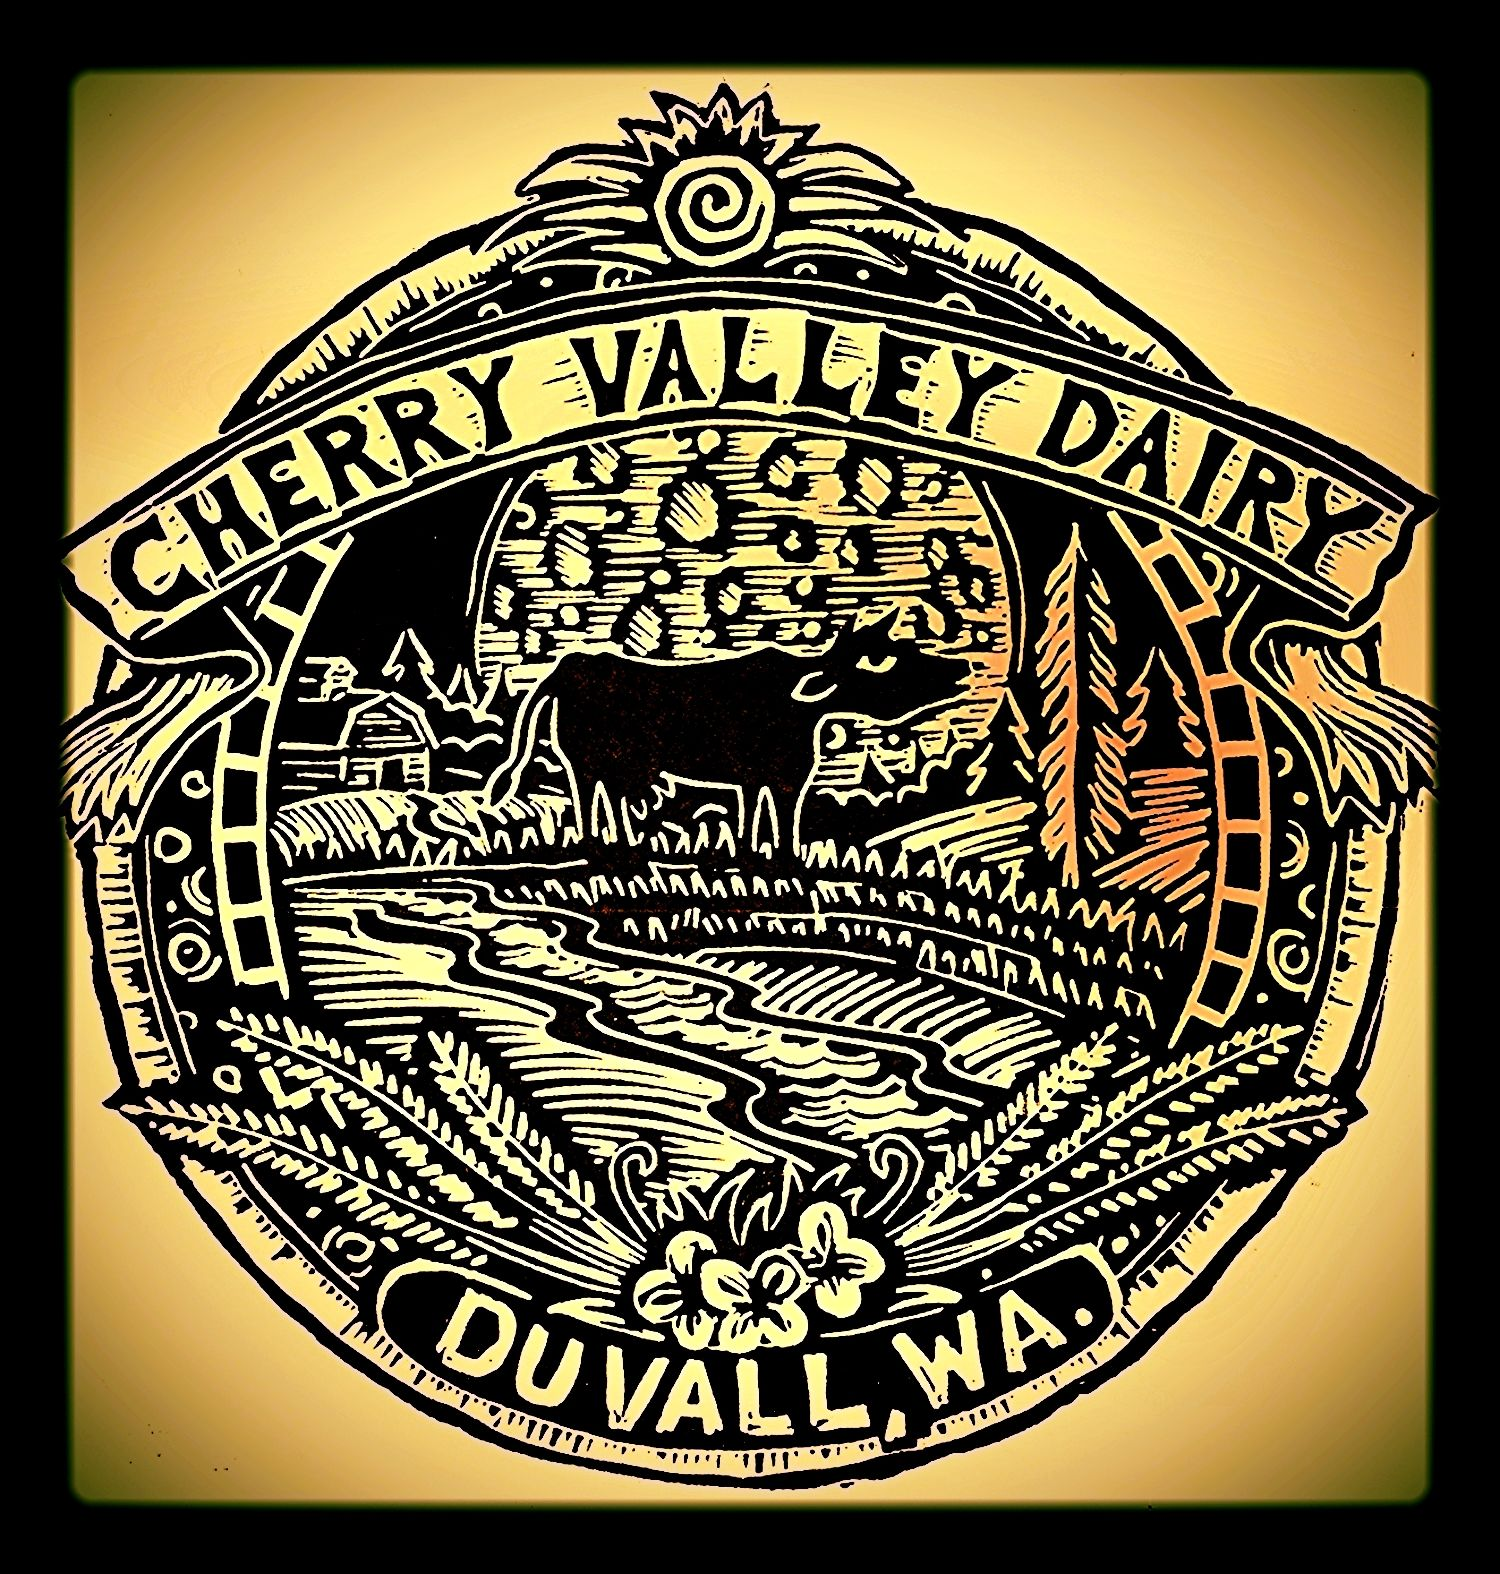 Cherry Valley Dairy